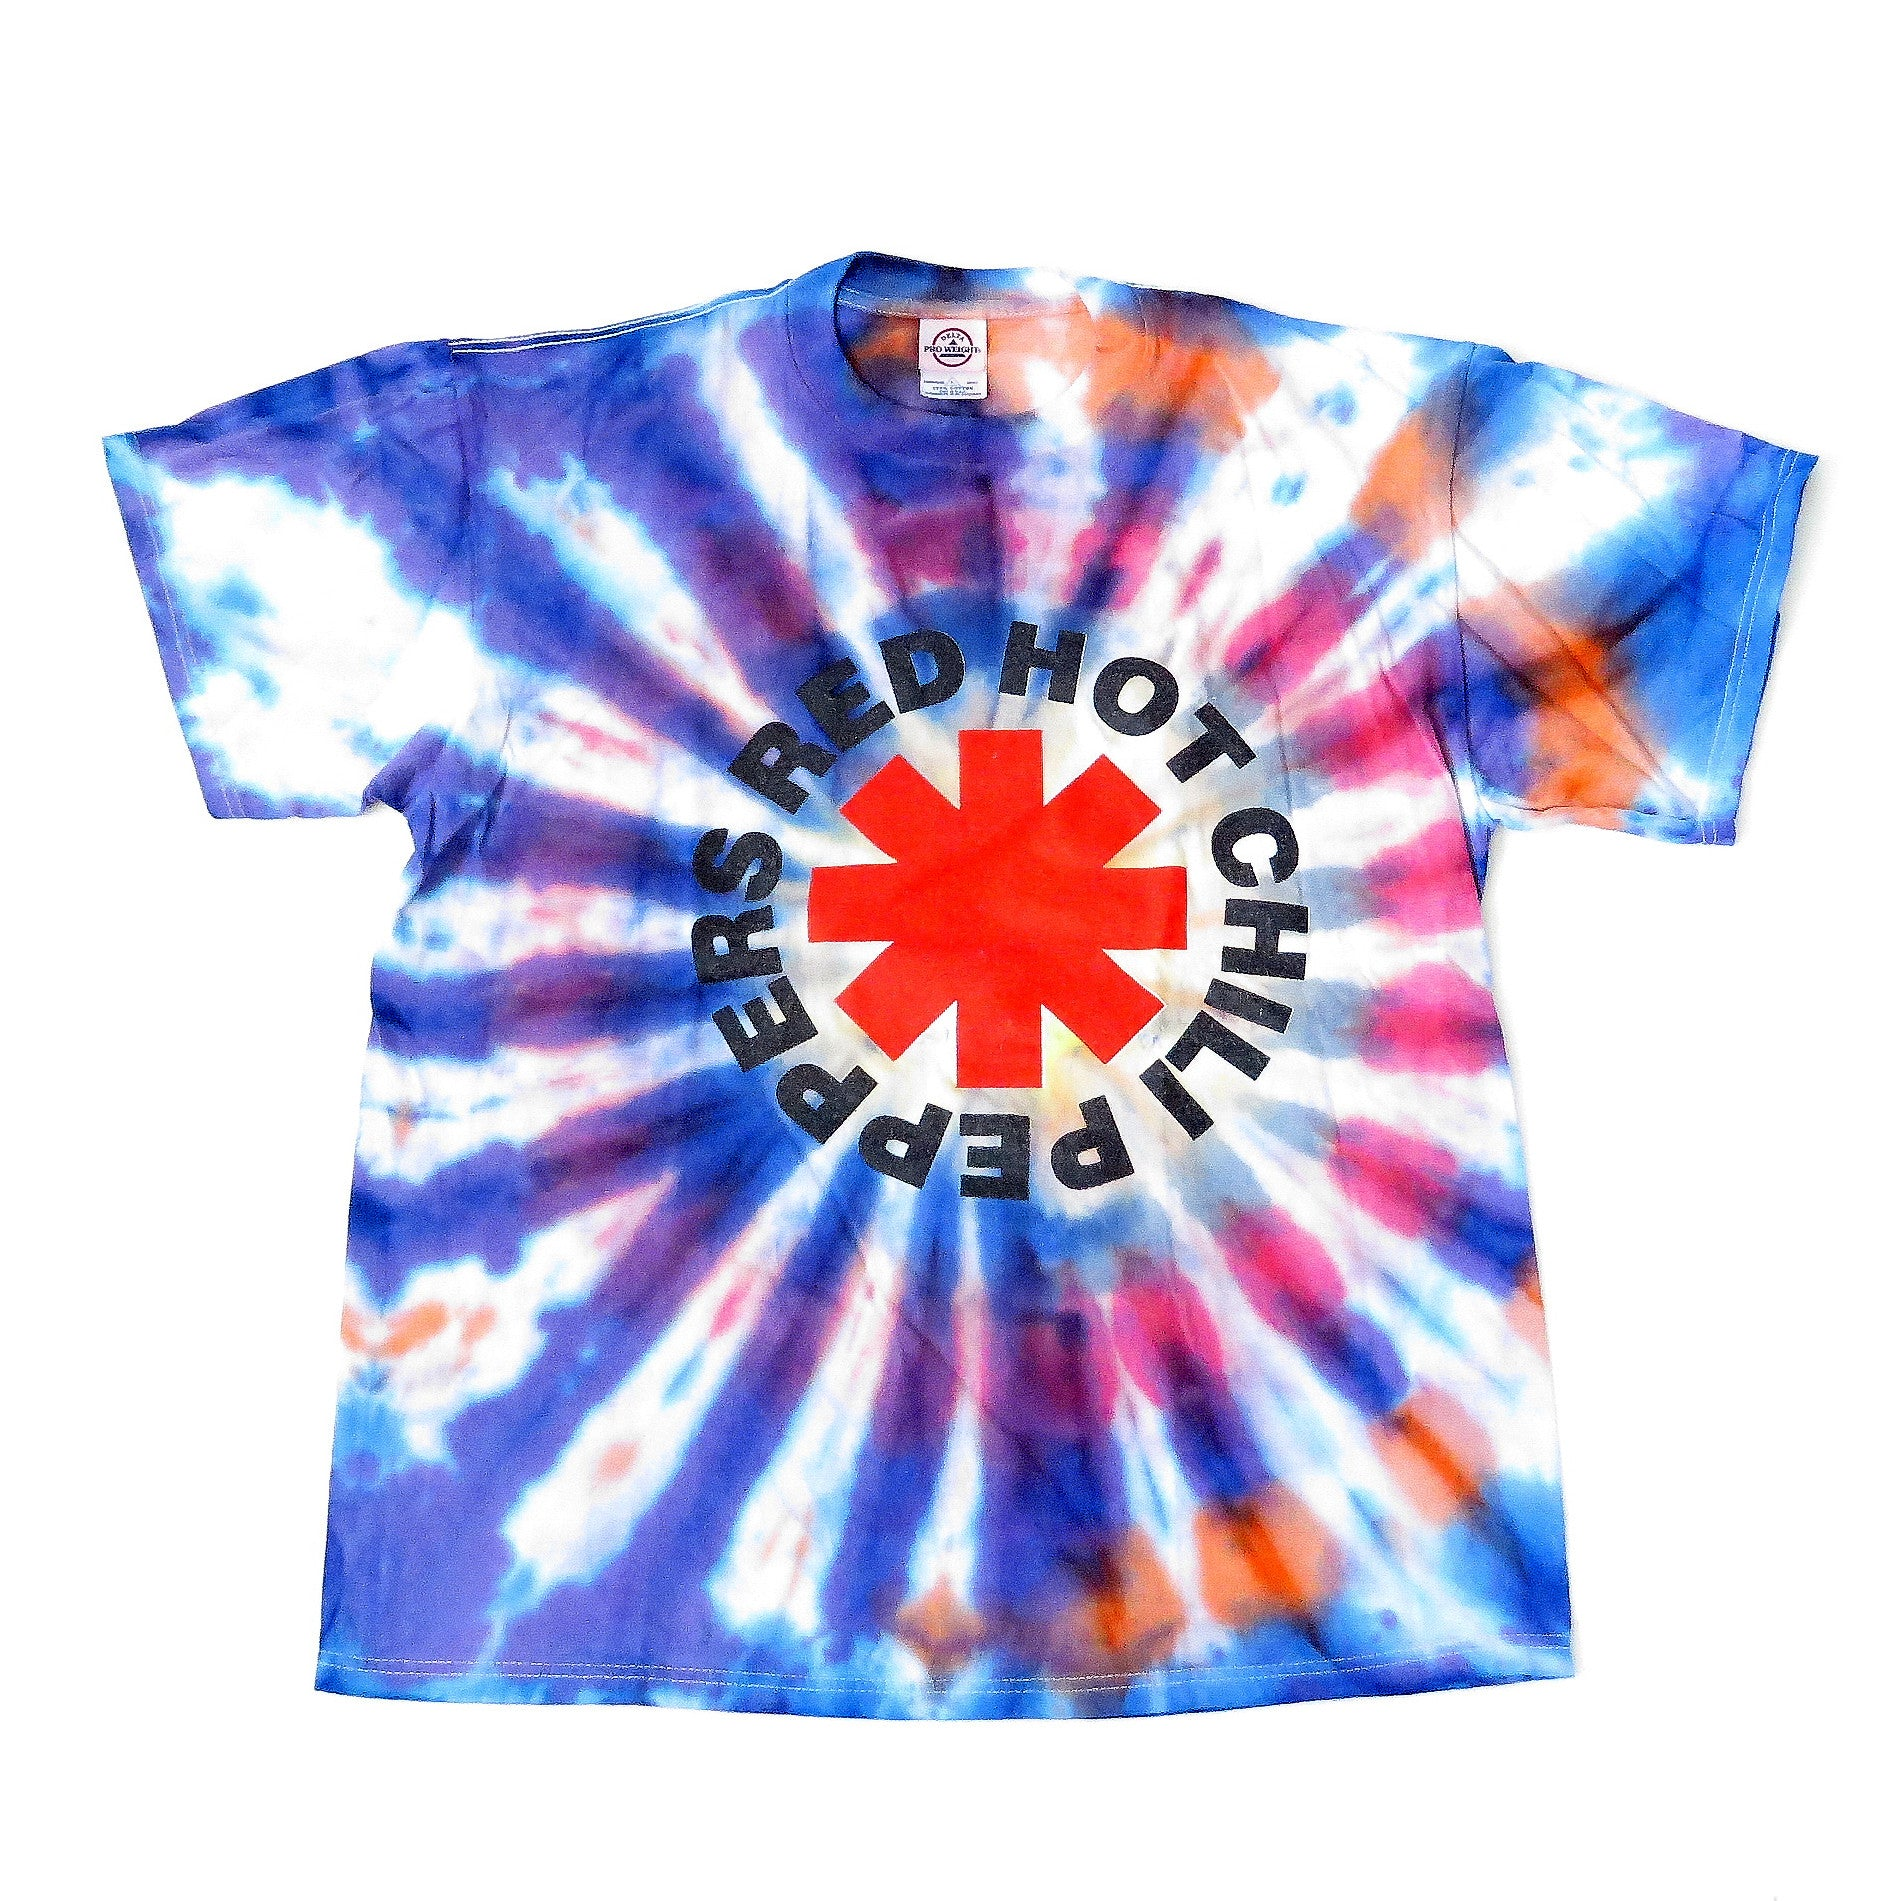 Red Hot Chili Peppers Tie-Dye By The Way Tour T-Shirt Sz L